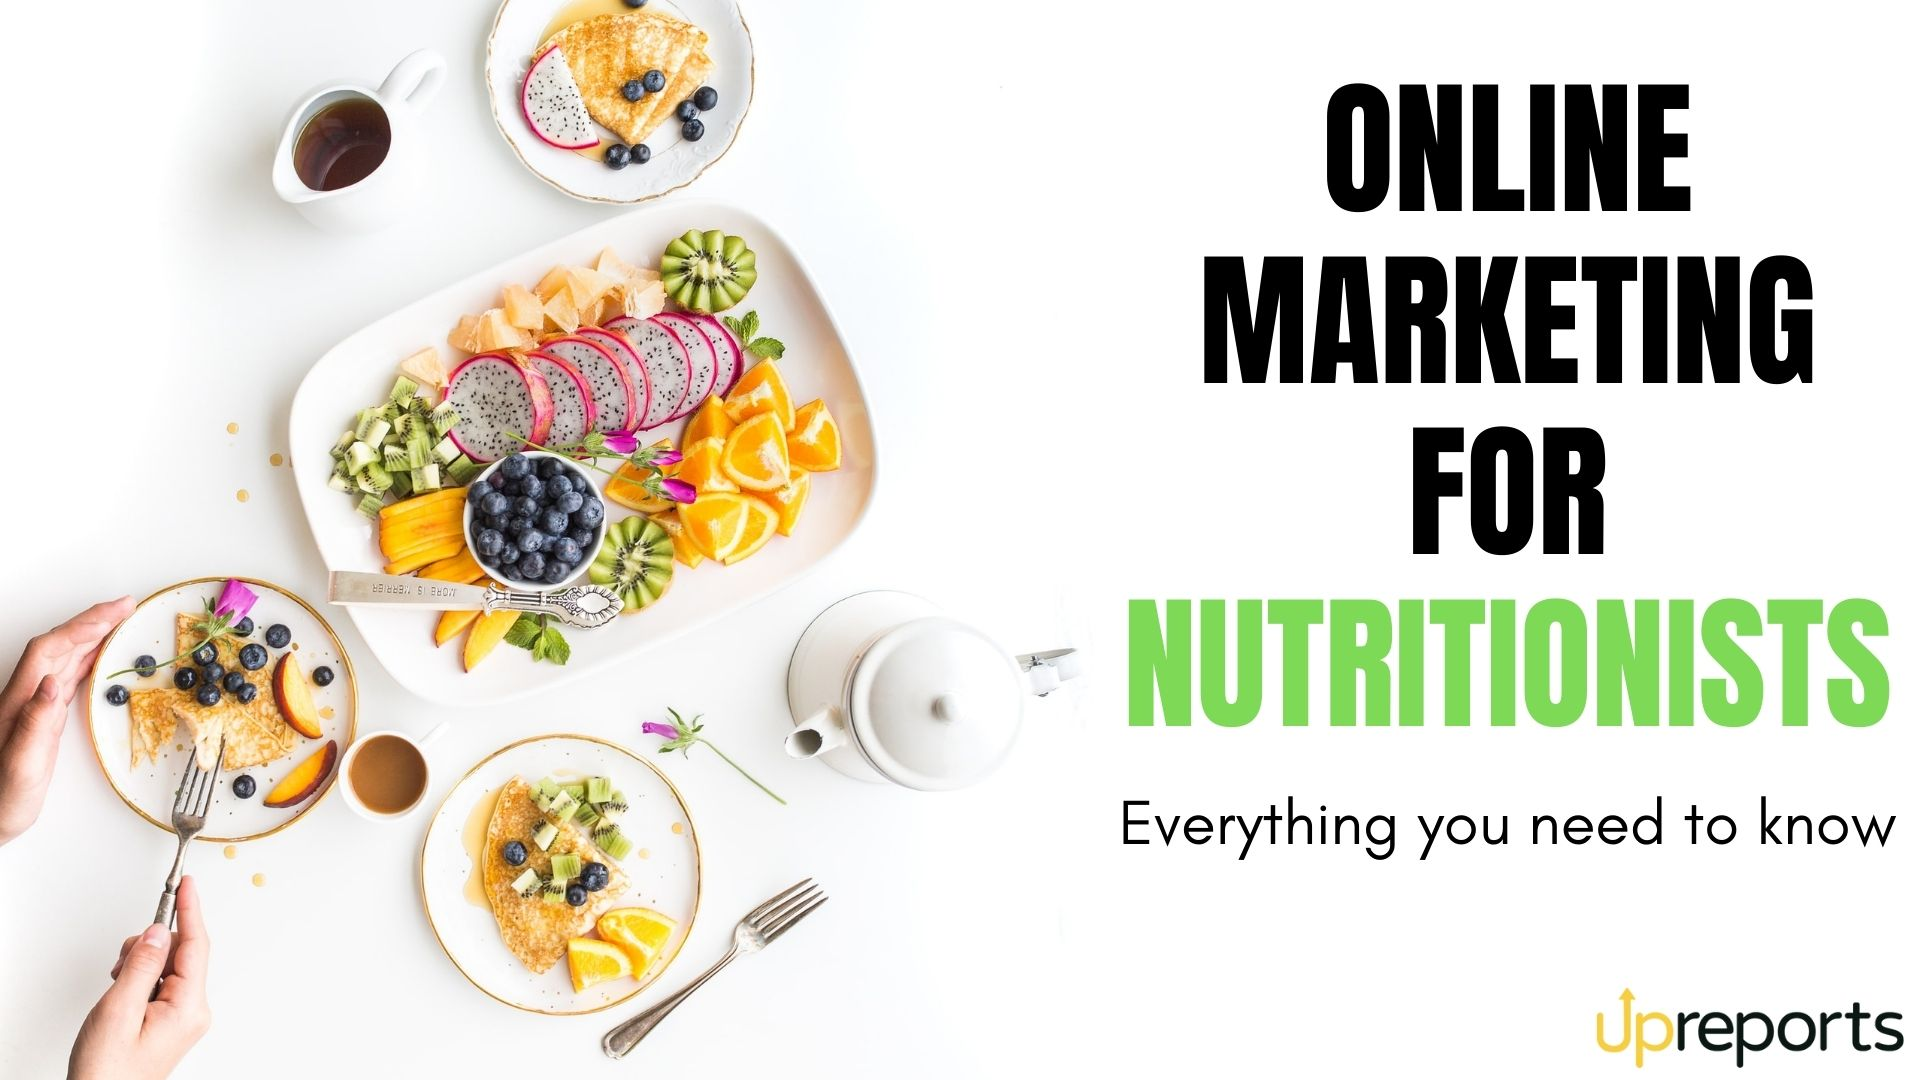 Online Marketing for Nutritionists: Everything You Need to Know